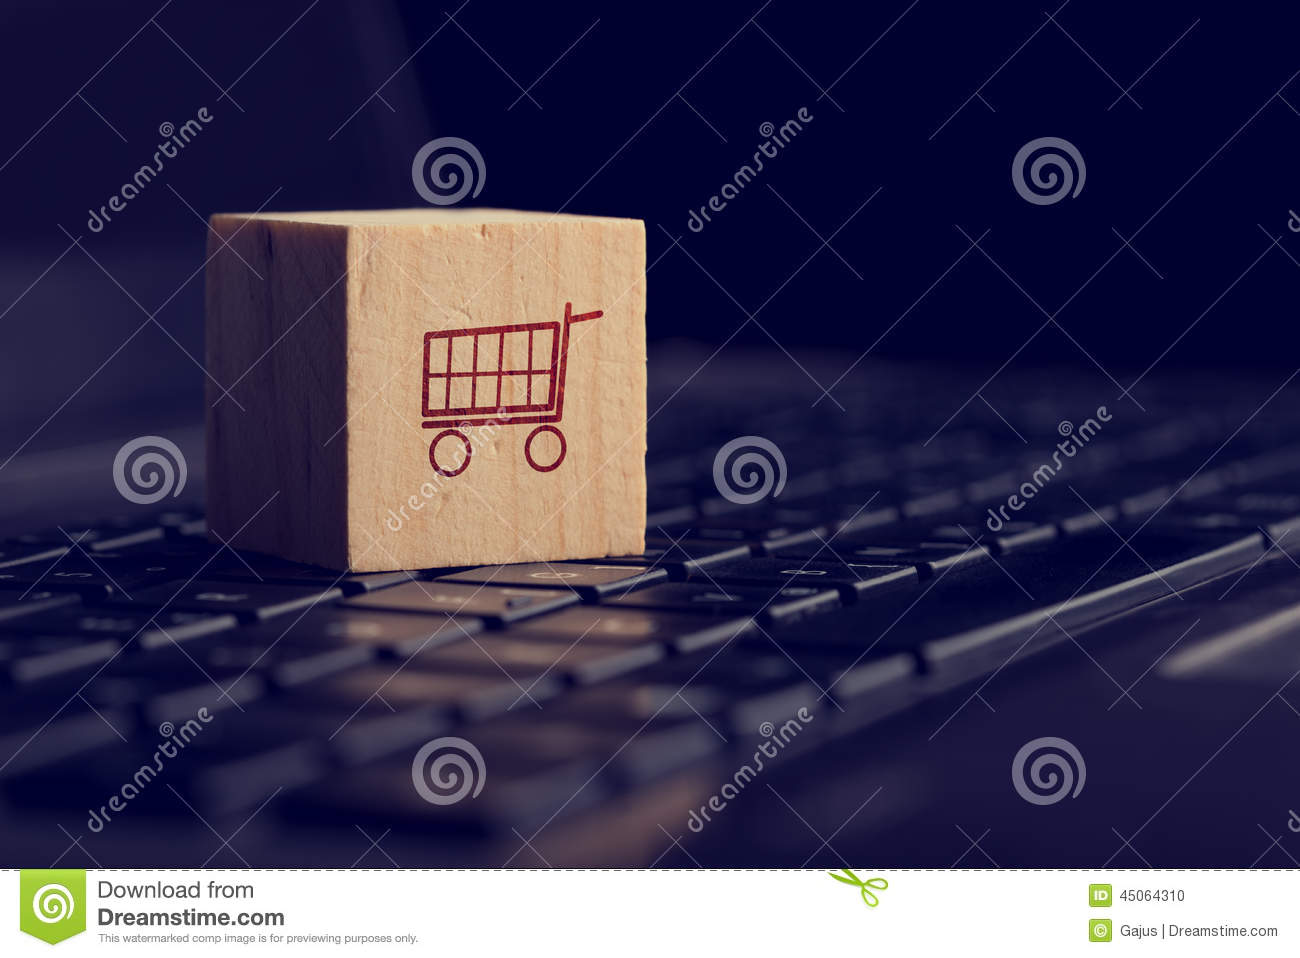 E commerce background images - Online Shopping And E Commerce Background Stock Photo